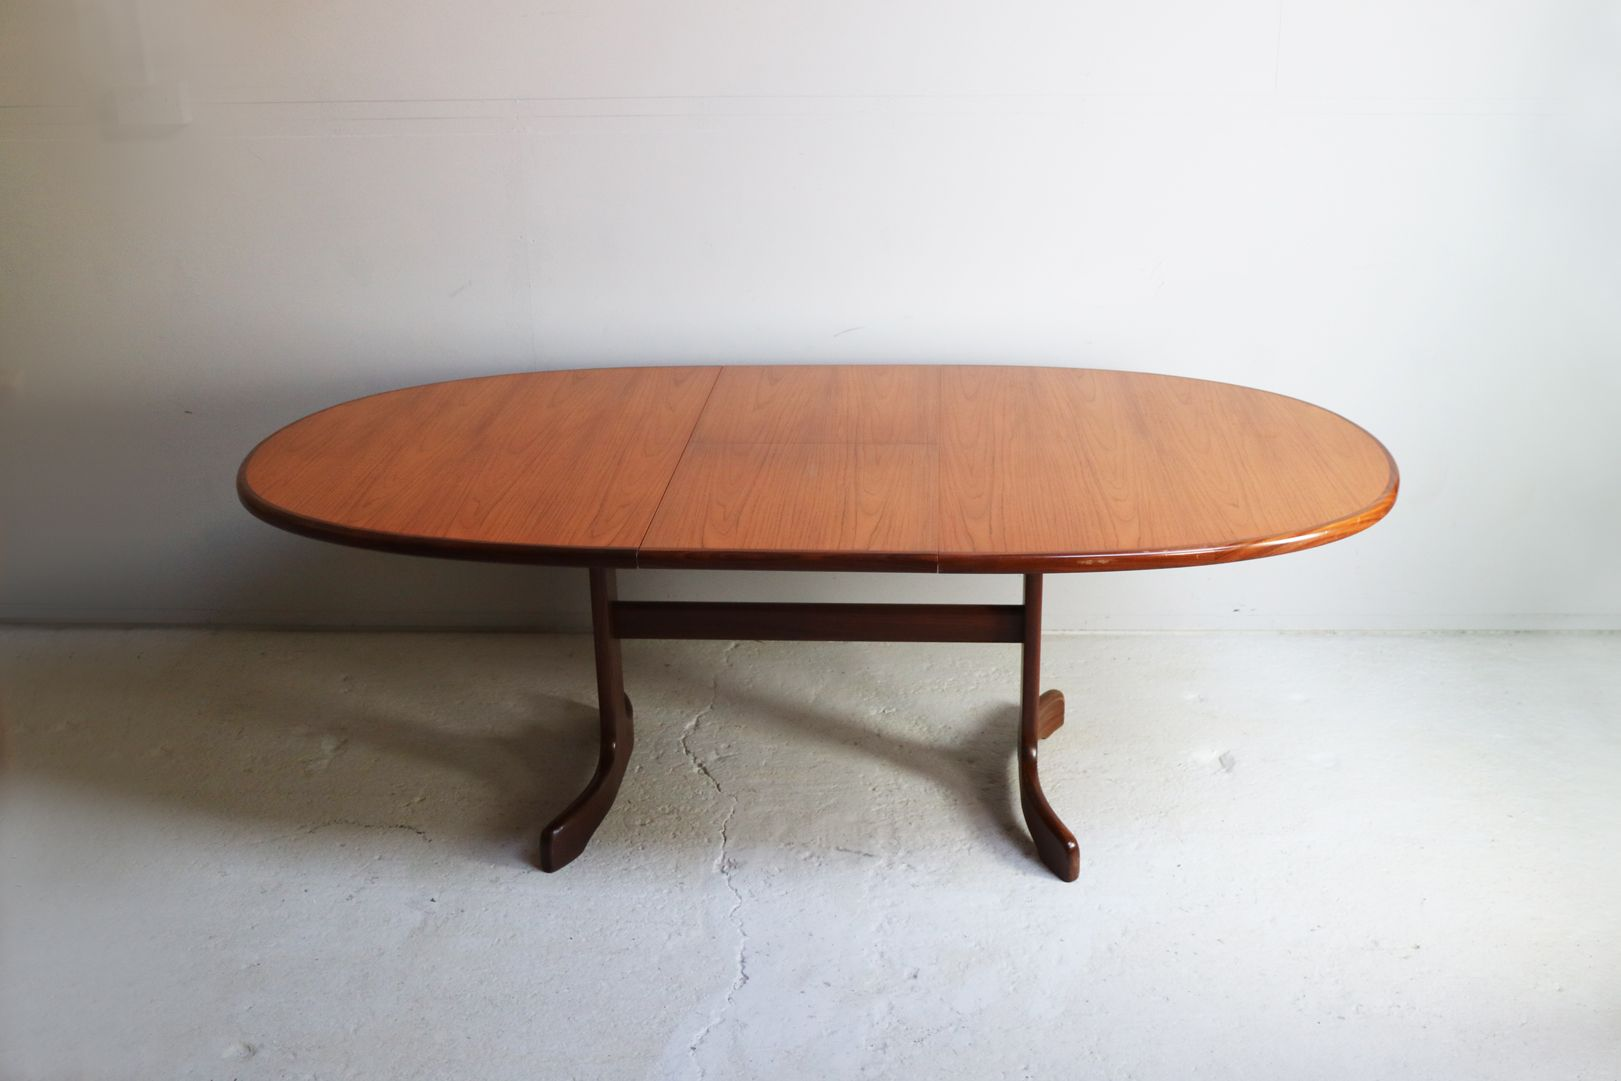 Vintage Extendable Dining Table from G-Plan, 1970s